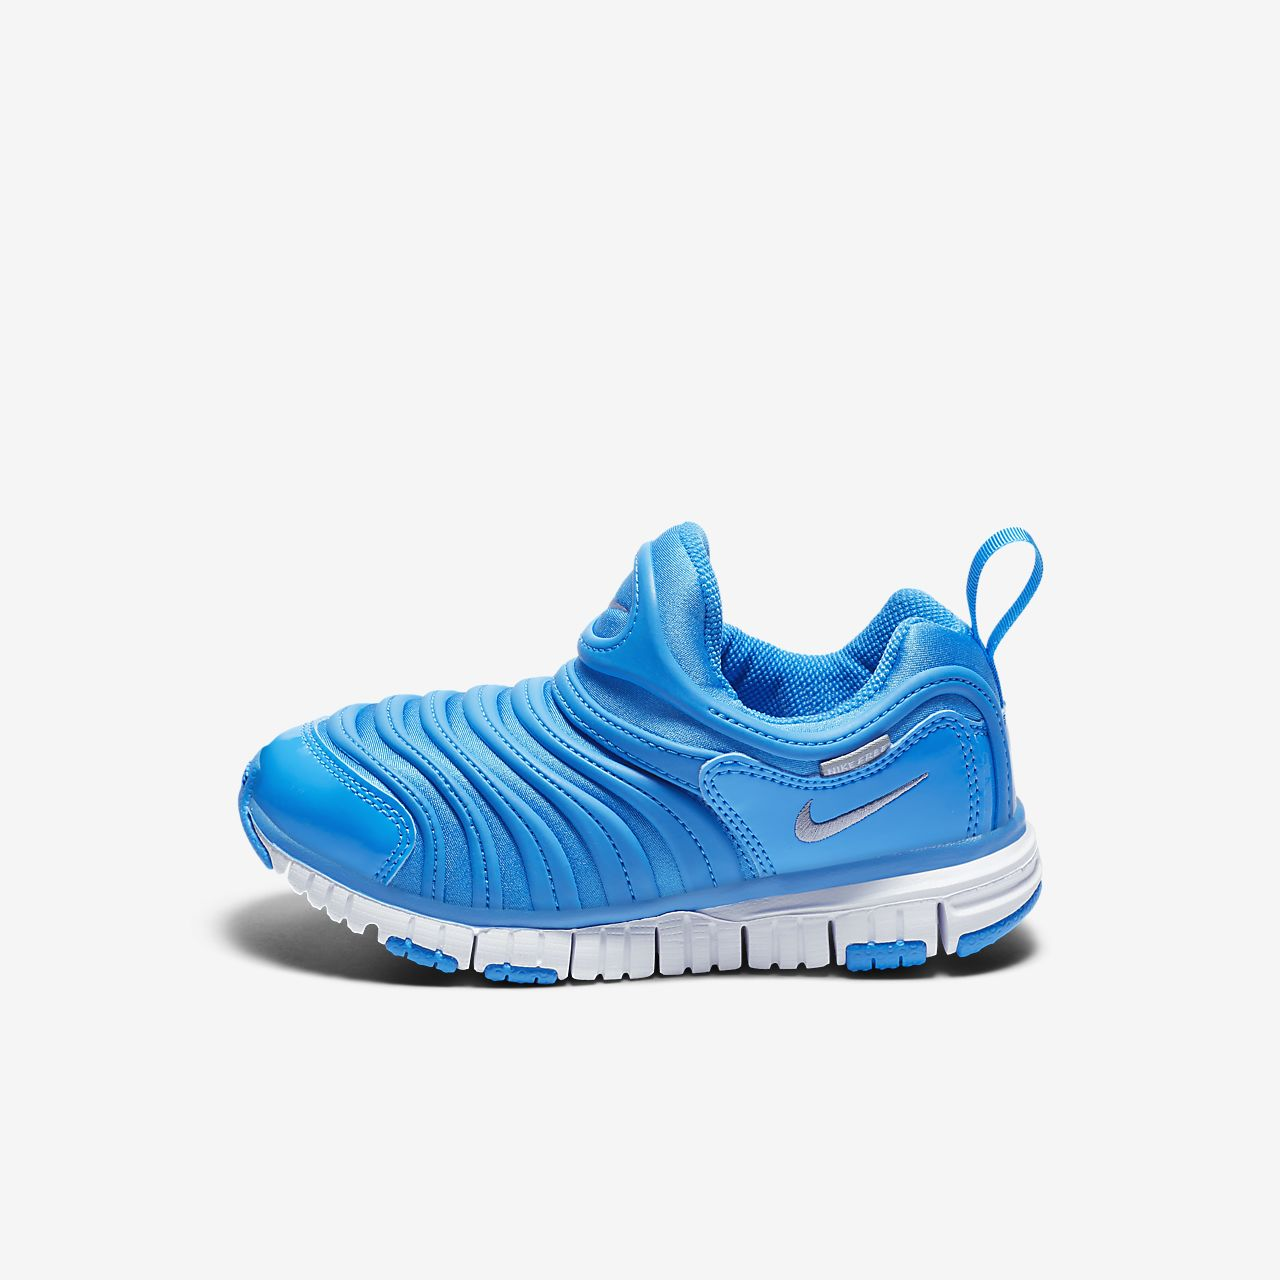 premium selection af3a4 6c326 ... Nike Dynamo Free Younger Kids  Shoe